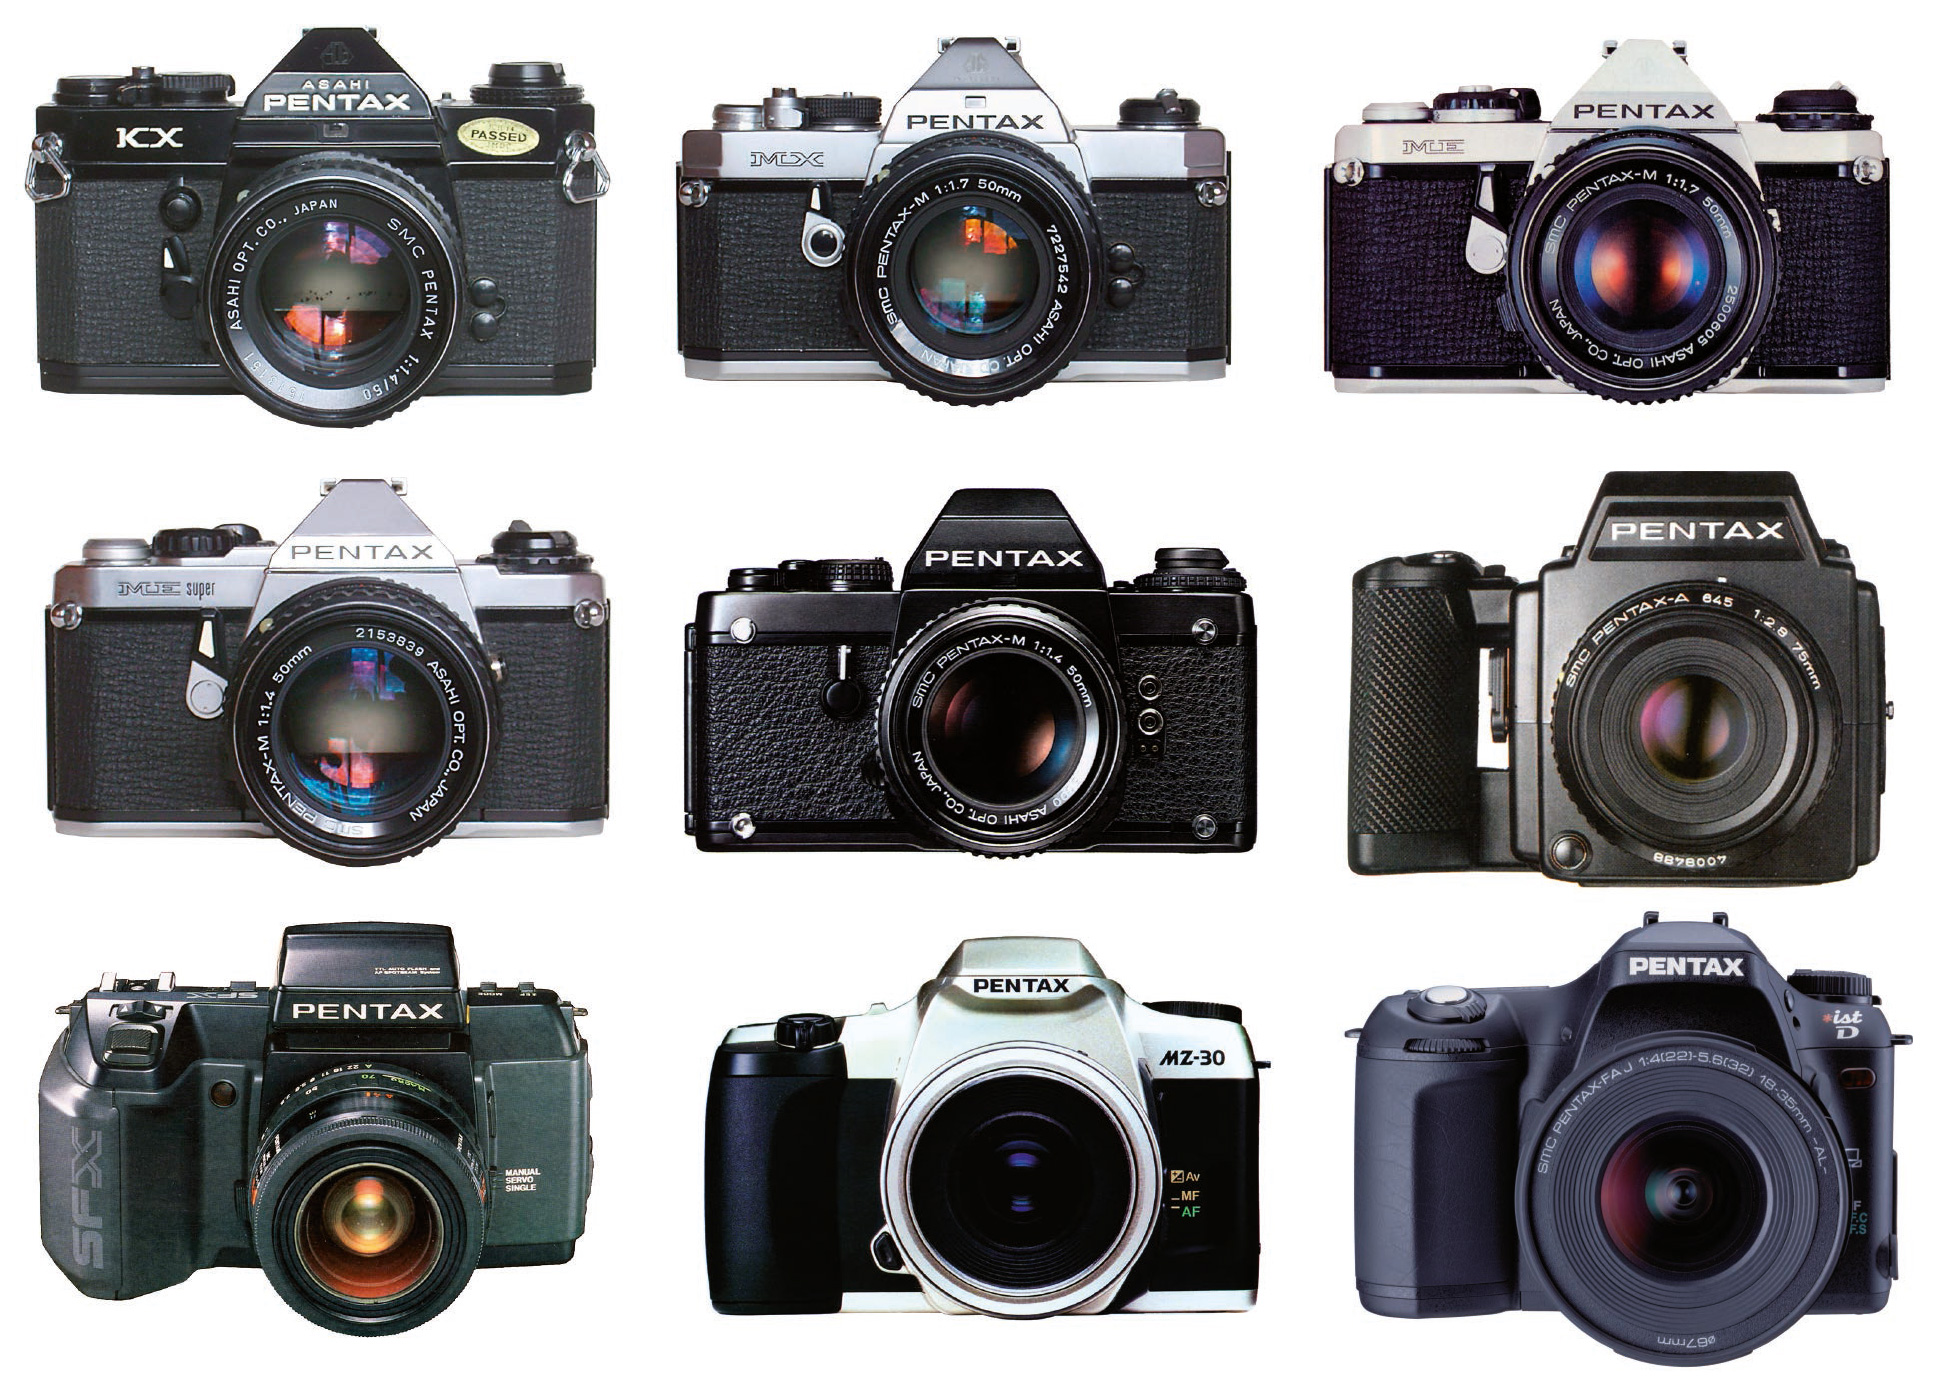 Pentax camera's I've owned over the years